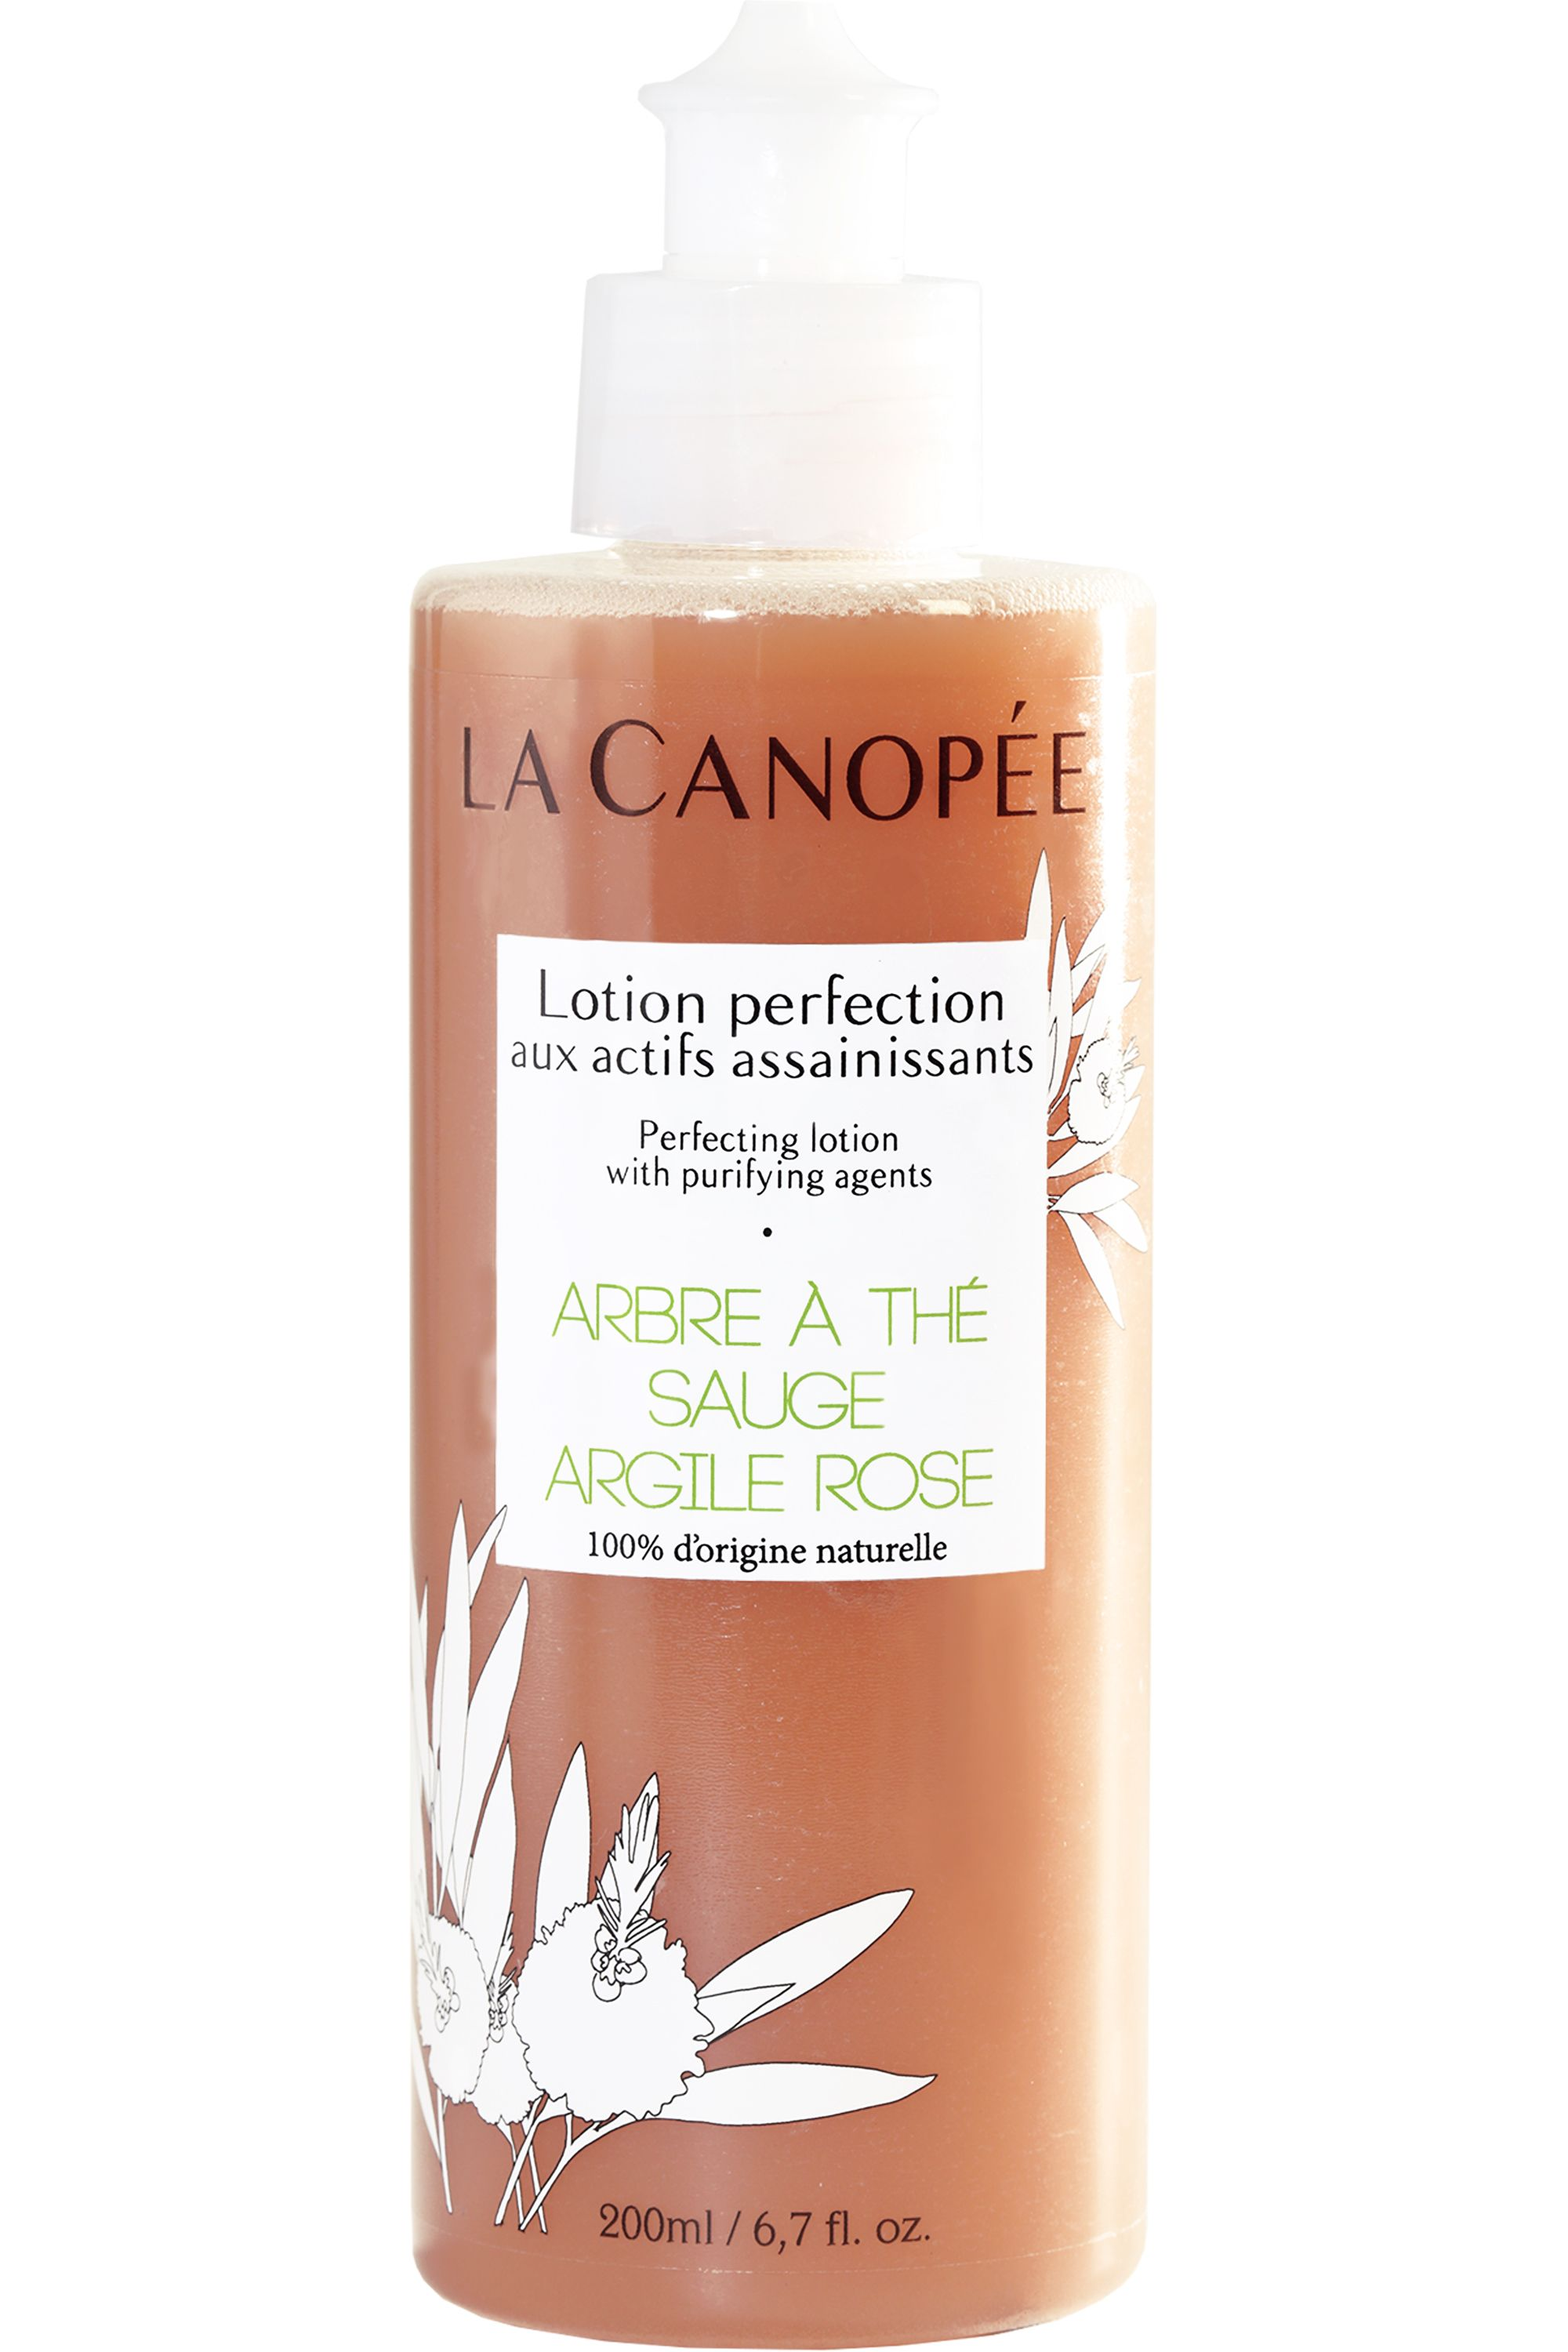 Blissim : La Canopée - Lotion Perfection aux Actifs Assainissants - Lotion Perfection aux Actifs Assainissants